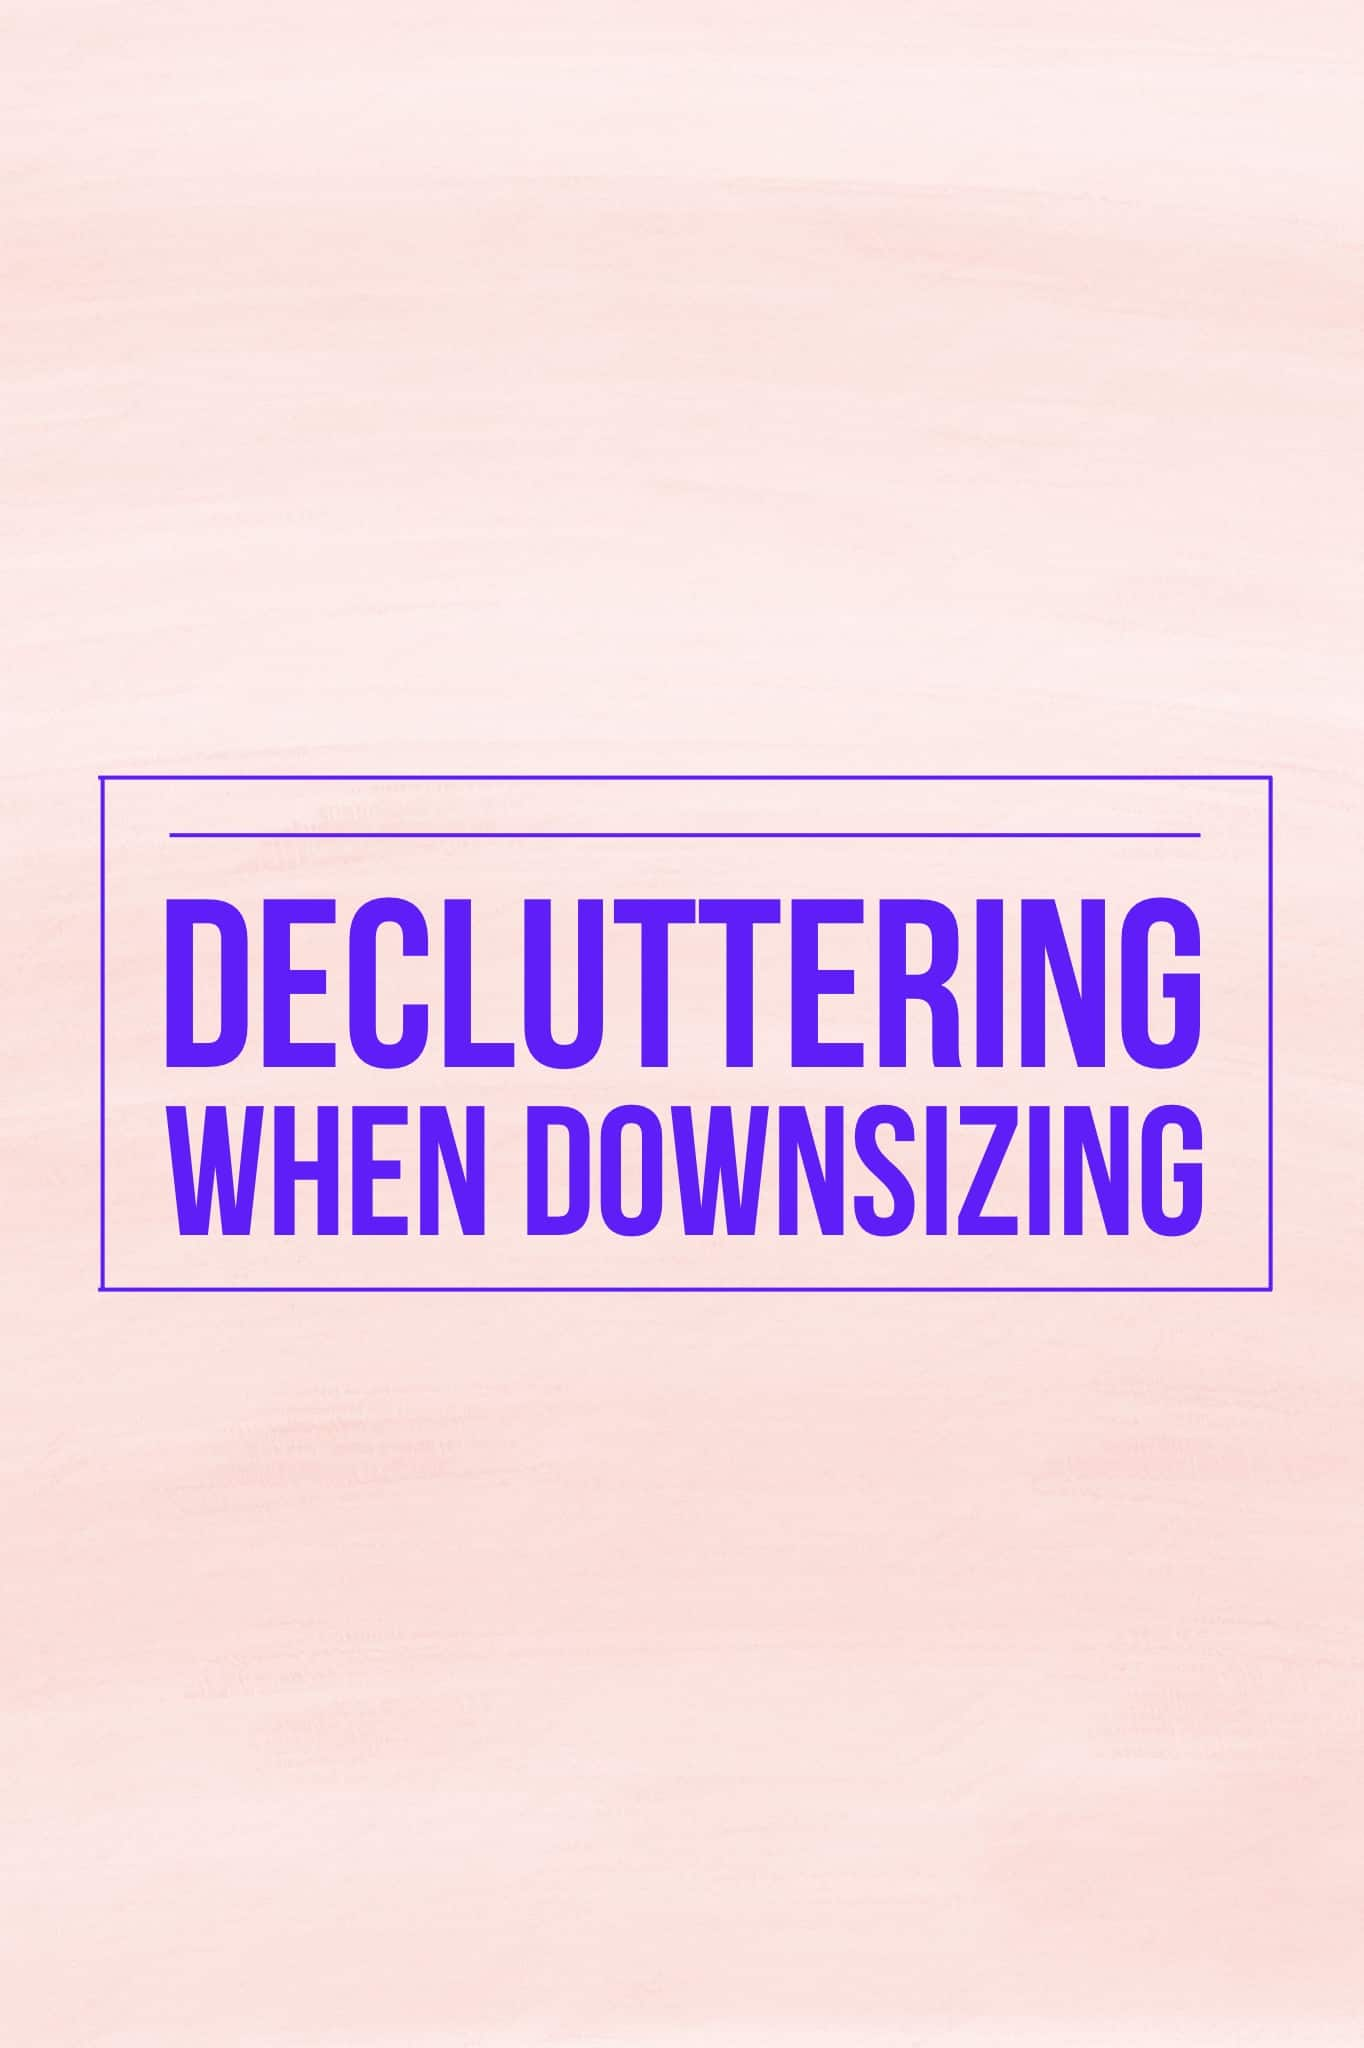 Decluttering When Downsizing title